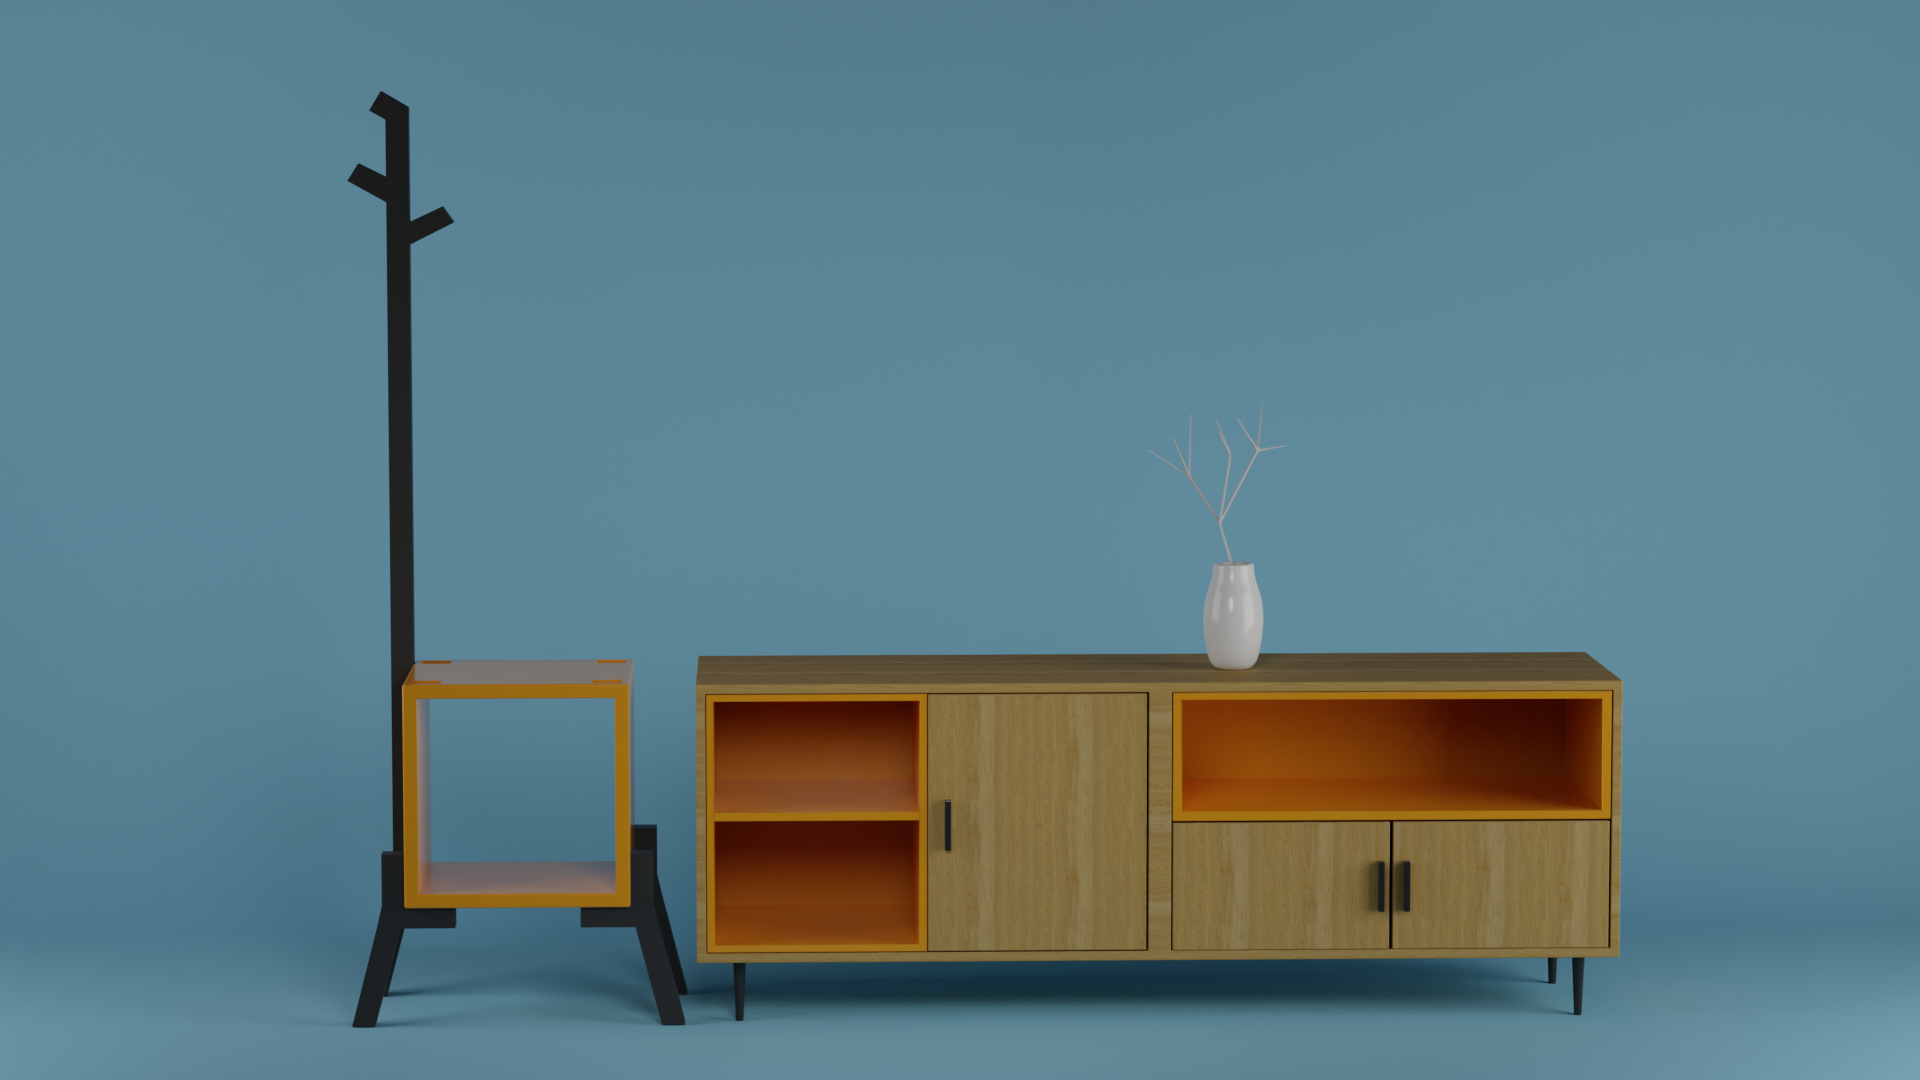 Minimalist furnitures preview image 1